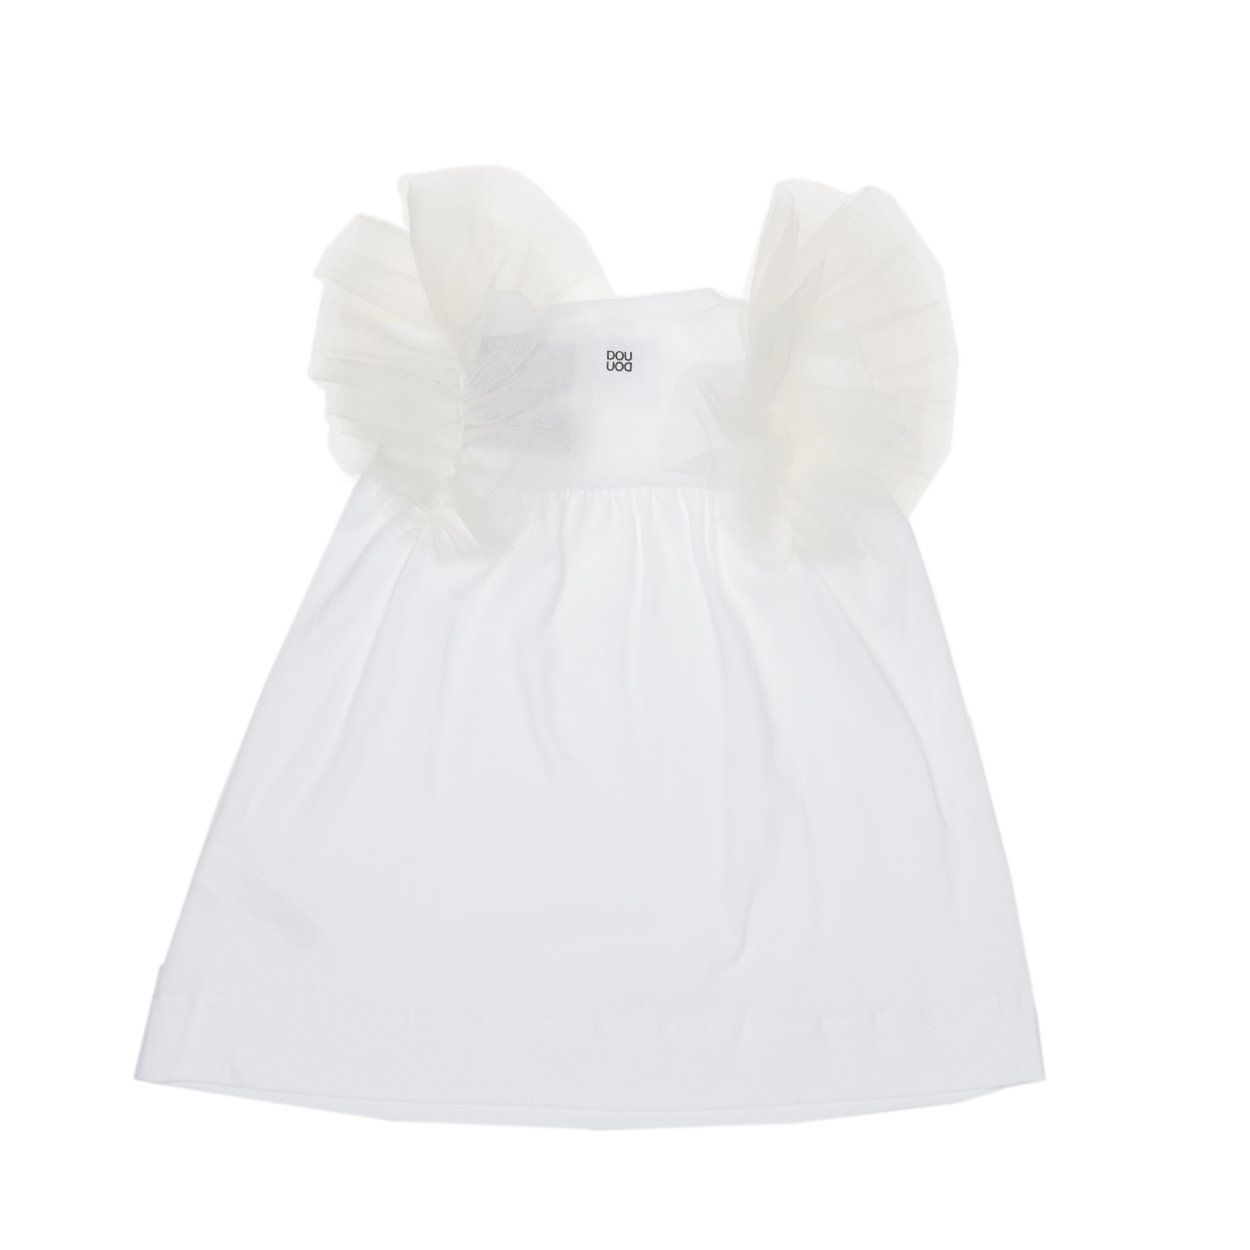 Image of Abito Bimba bianco con frappe in tulle sulle spalle